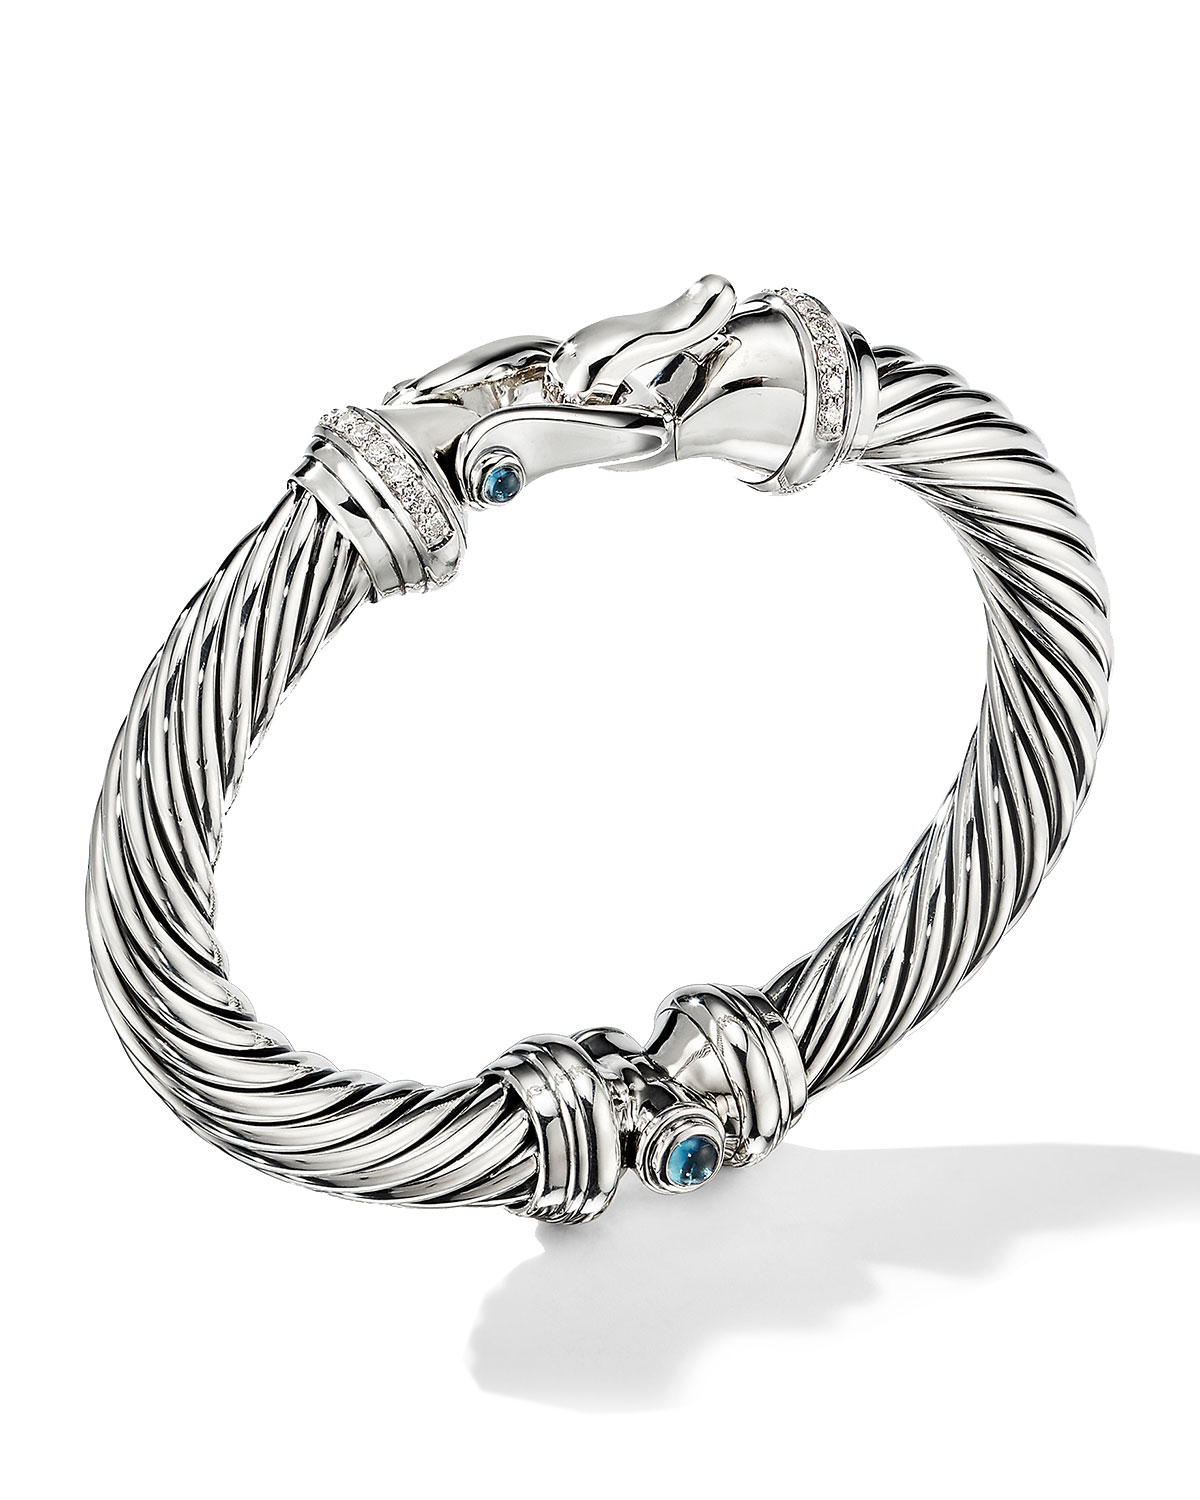 David Yurman 9mm Cable Buckle Bracelet w/ Diamonds & Topaz